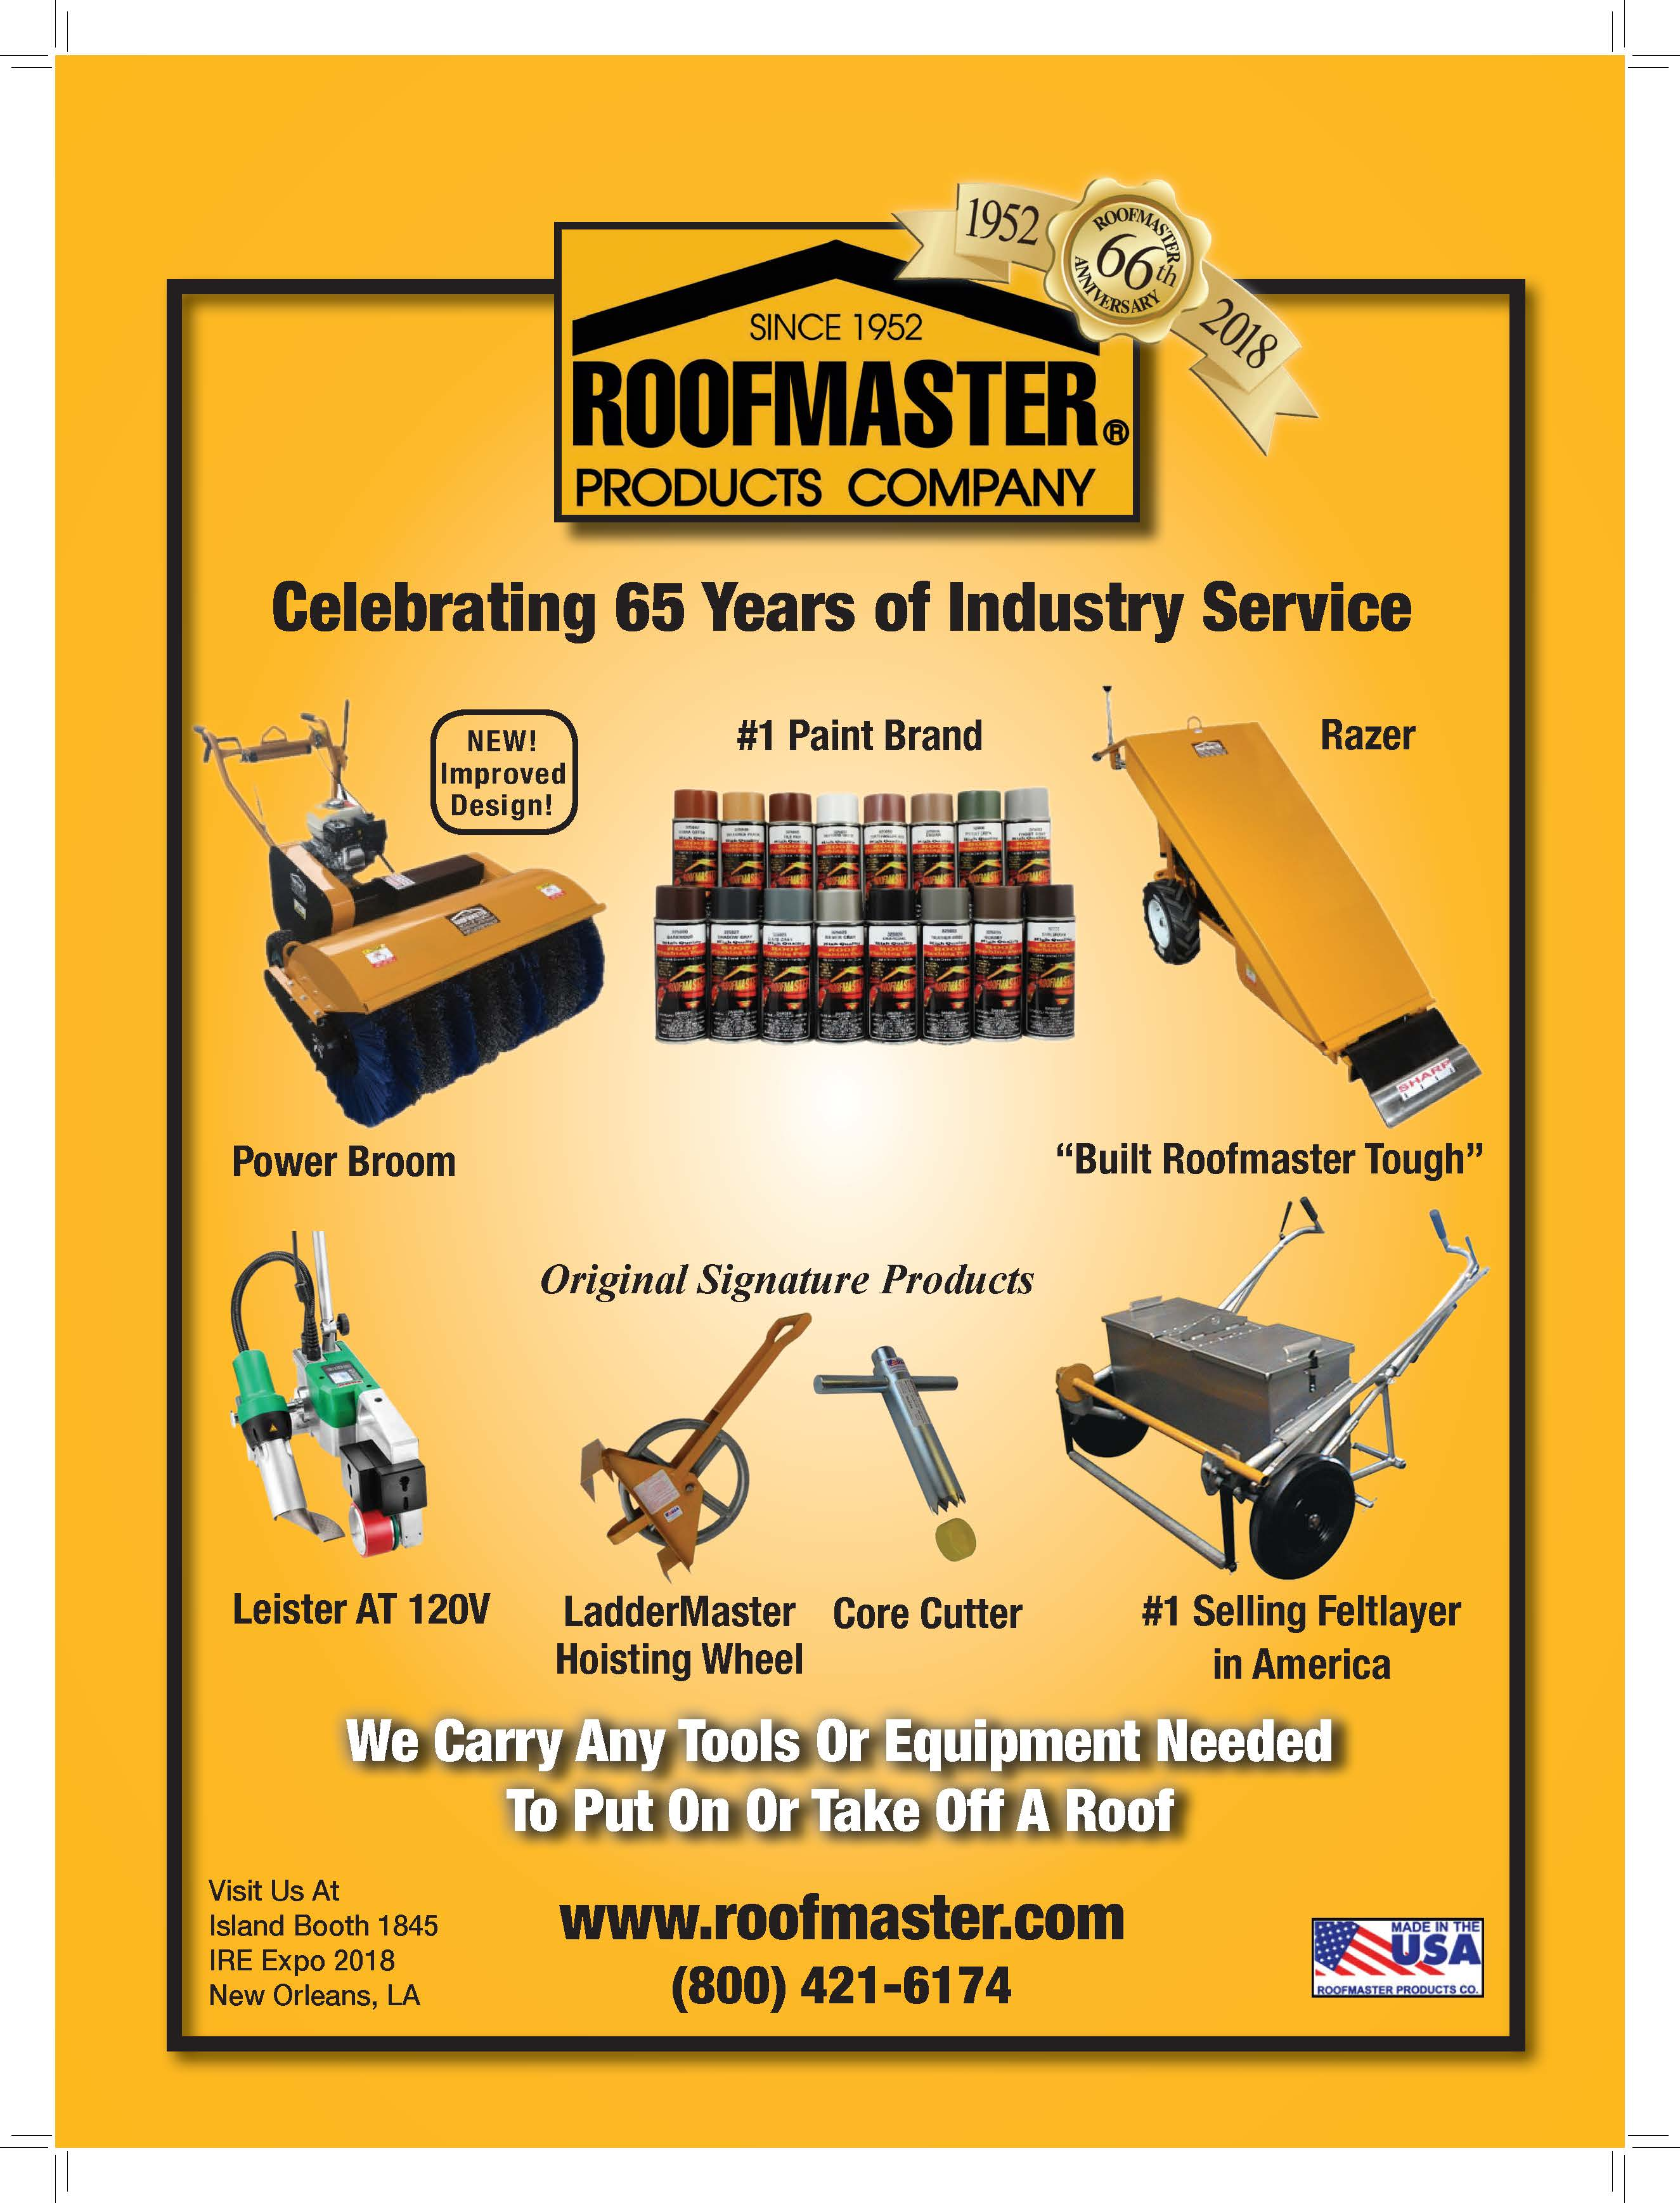 Roofmaster Manufacturer And Distributor Of Roofing Tools